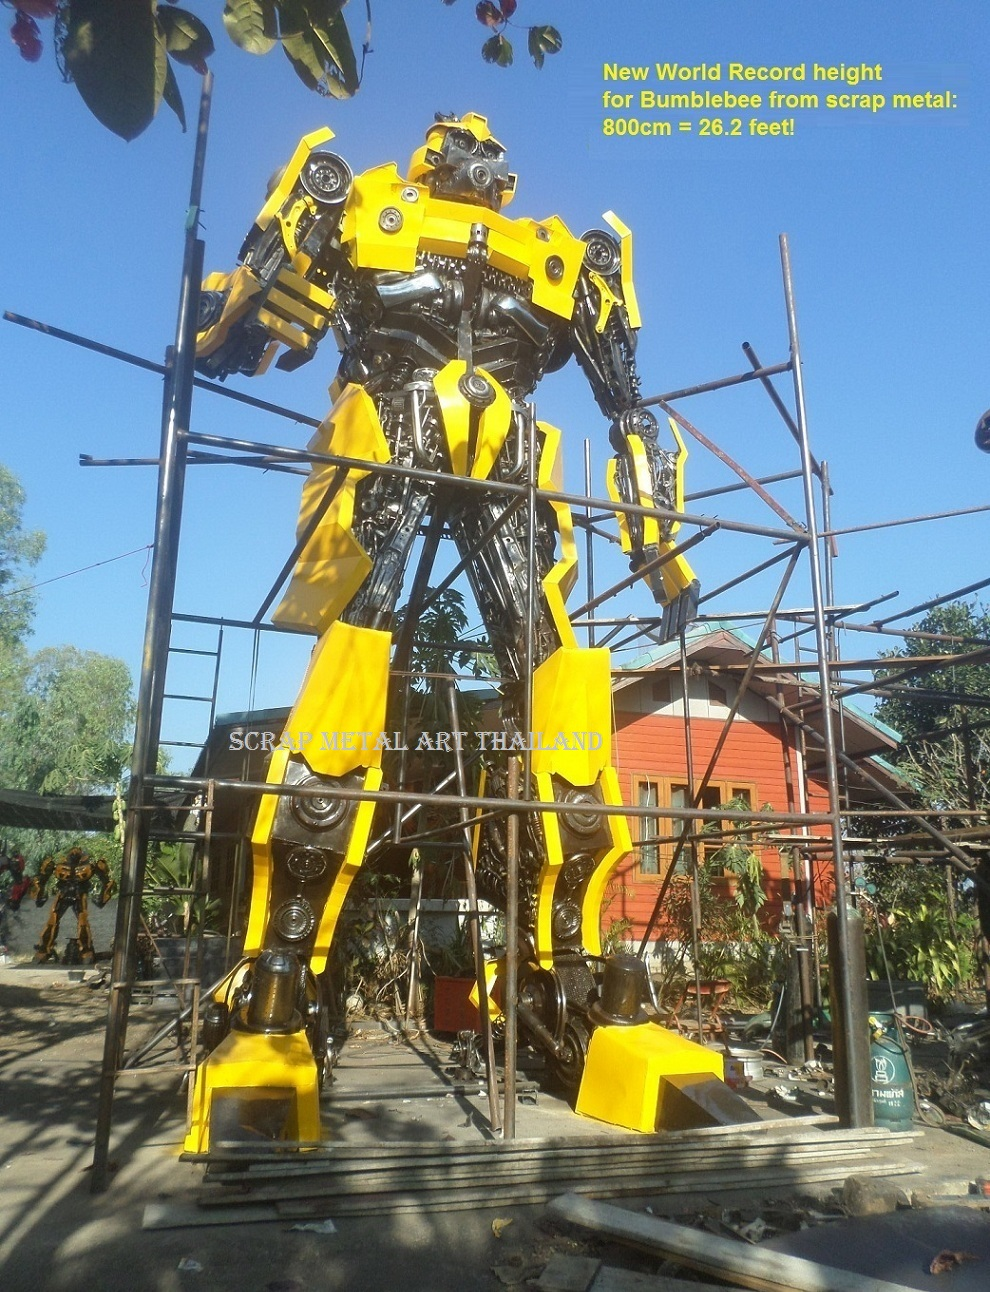 Giant Bumblebee figure worlds tallest largest biggest bumblebee statue 800cm 26ft high